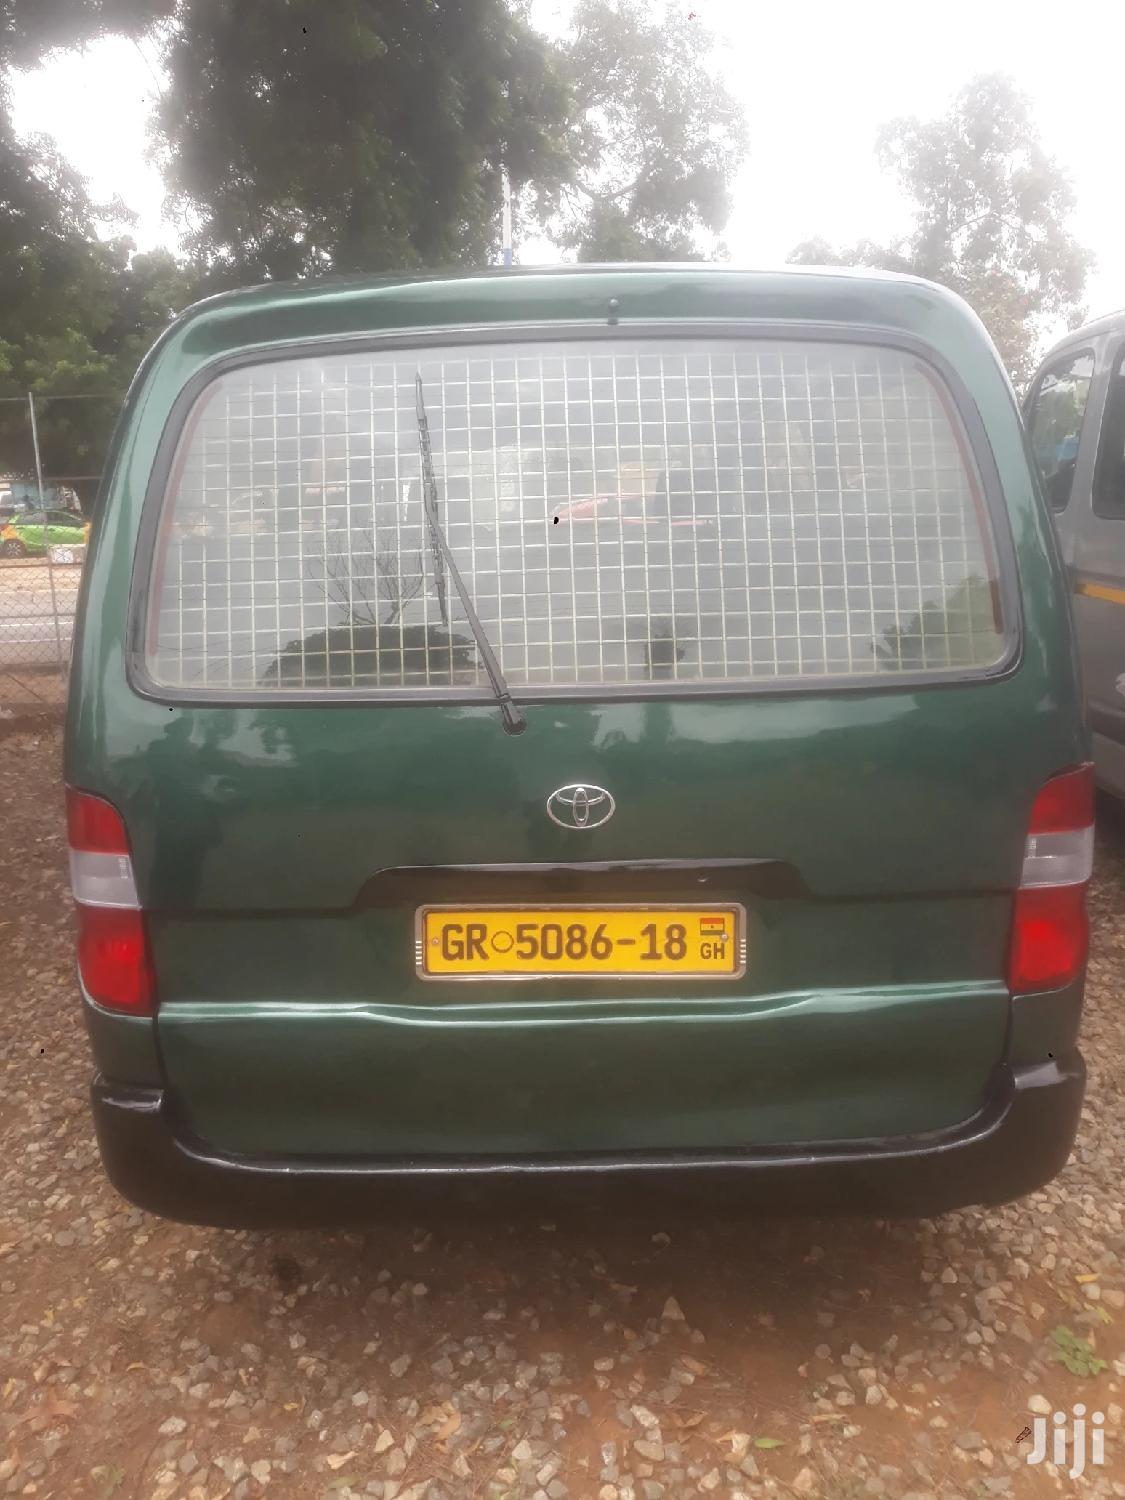 Toyota Hiace | Buses & Microbuses for sale in Abelemkpe, Greater Accra, Ghana